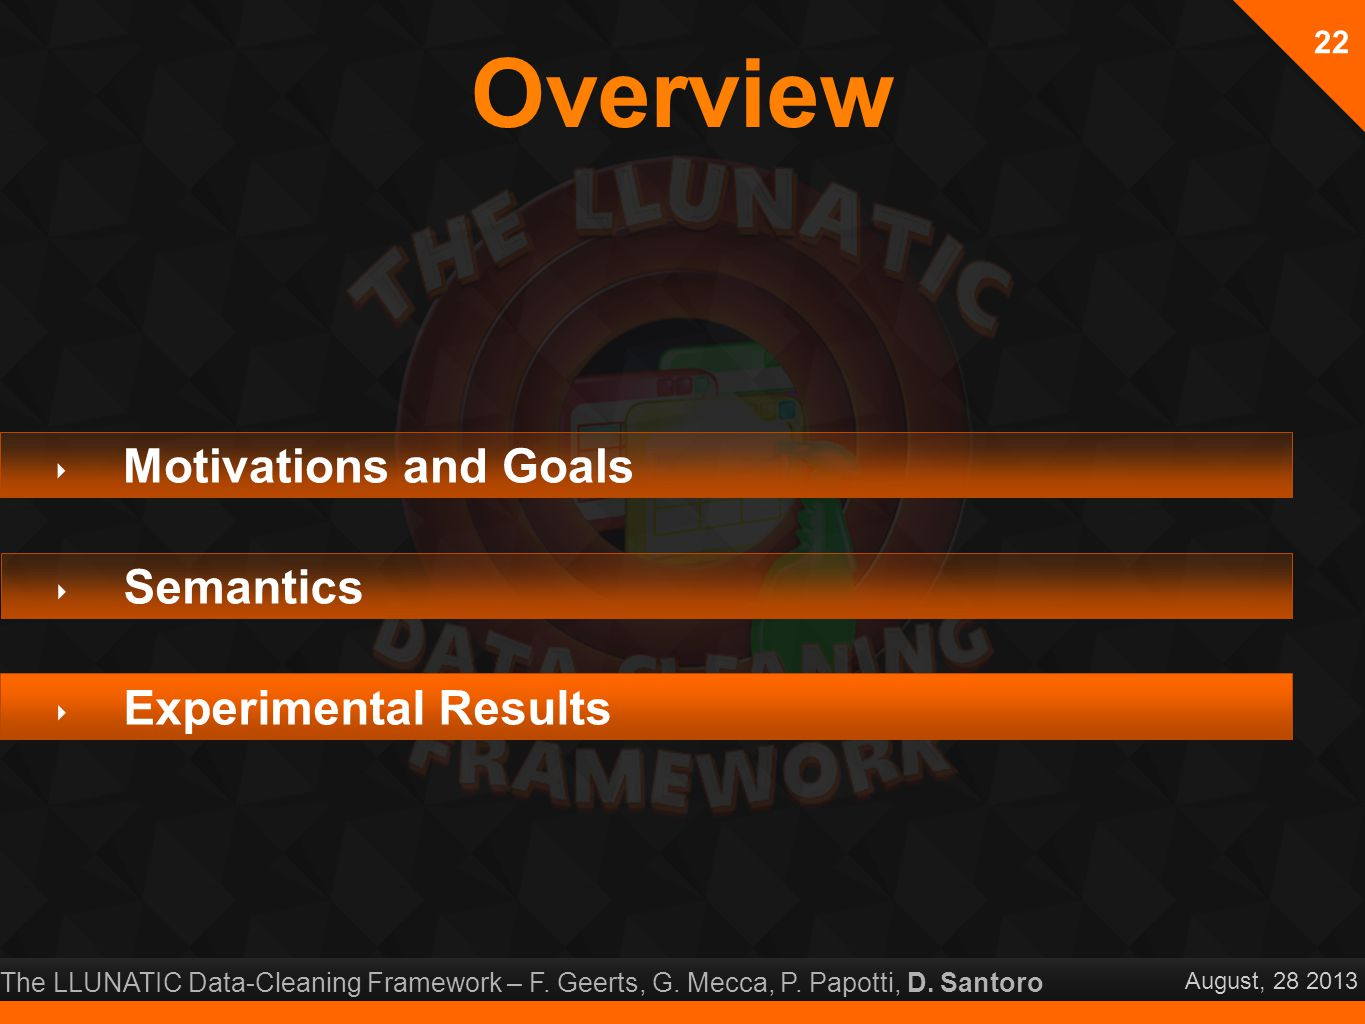 The LLUNATIC Data-Cleaning Framework – F. Geerts, G. Mecca, P. Papotti, D. Santoro August, 28 2013 Overview 22 ‣ Motivations and Goals ‣ Semantics ‣ E